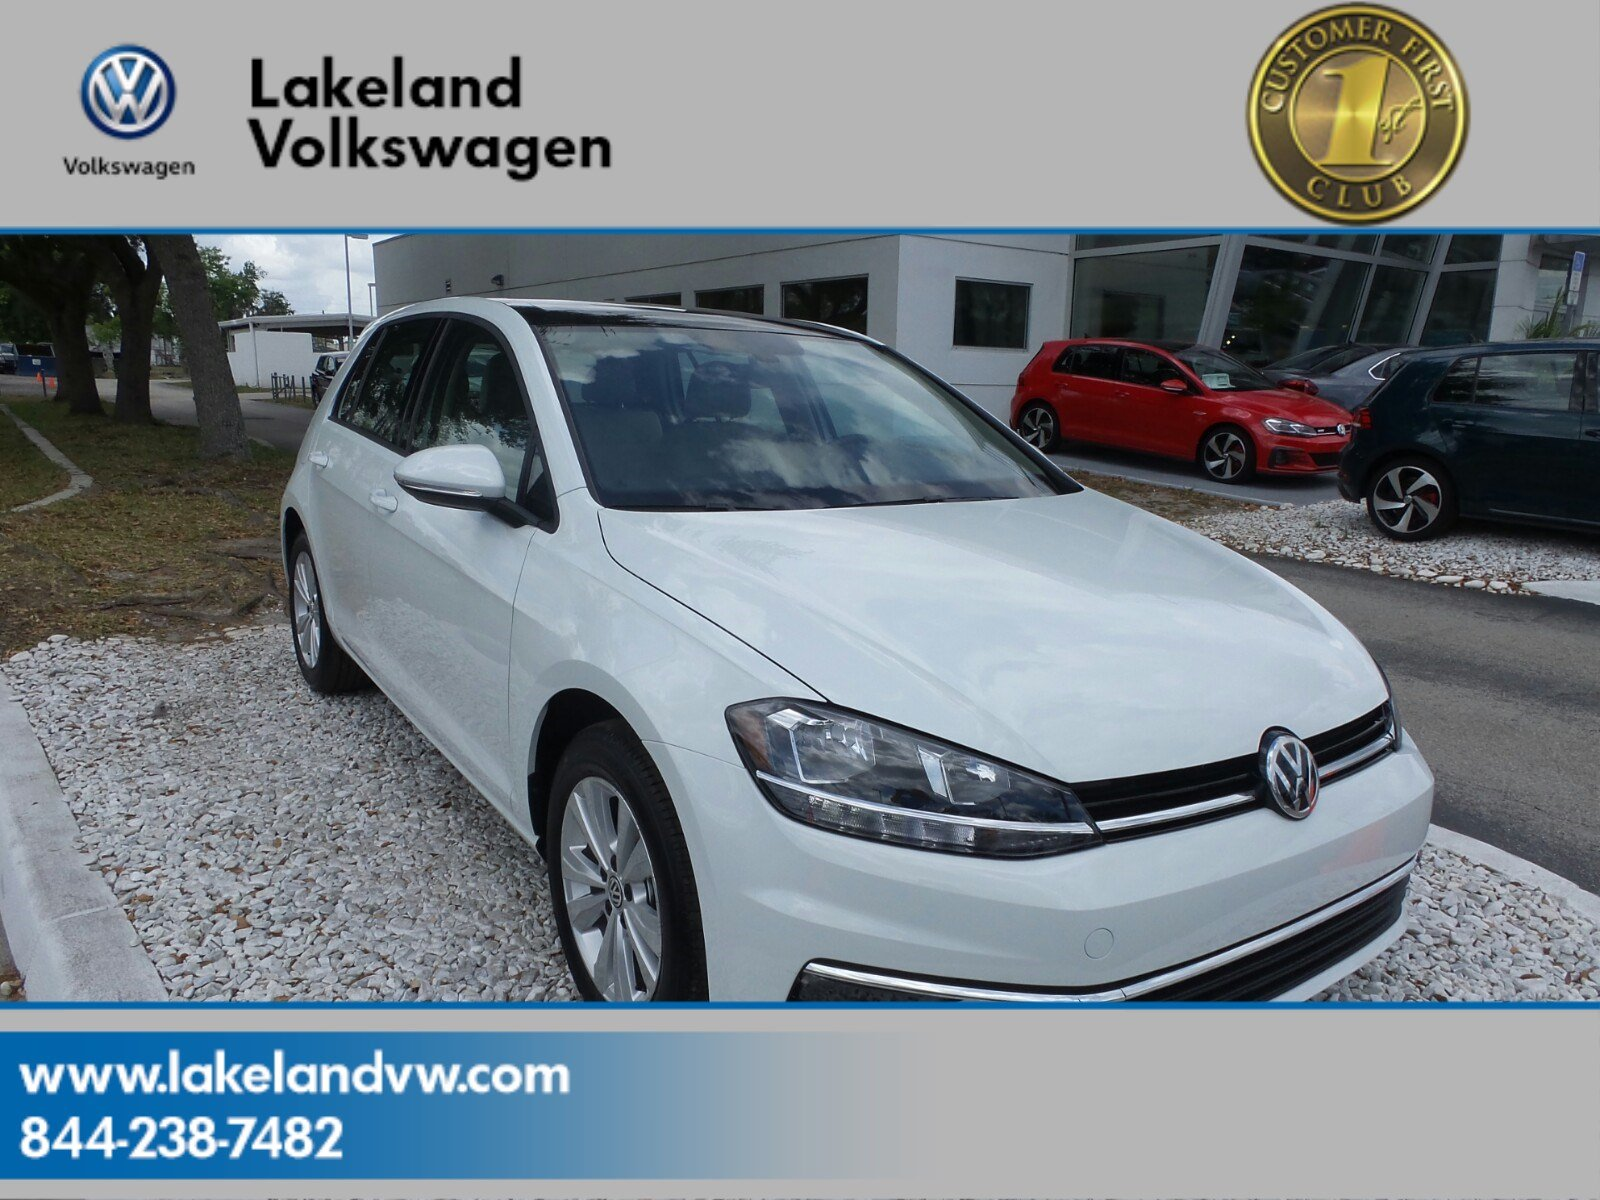 sale fl for img com auto volkswagen lakeland f dealers used ford cars at in